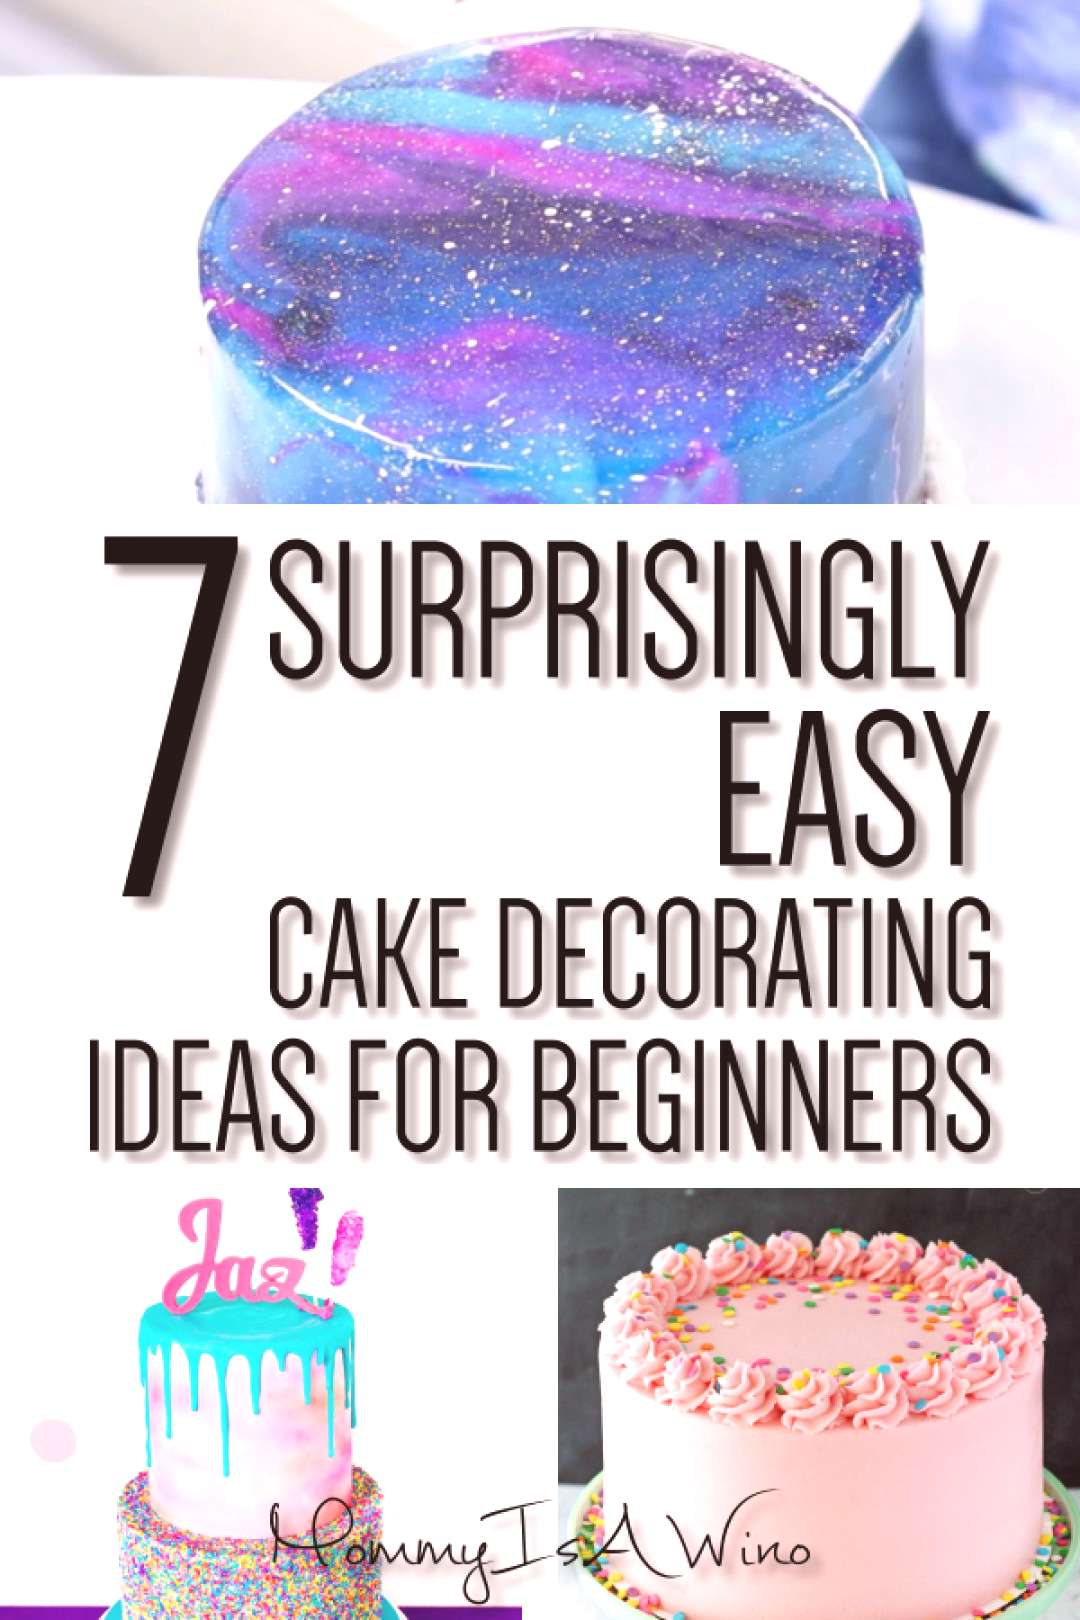 Easy Cake Decorating Ideas for Beginners - How To Decorate Cake For Beginners - 7 Surprisingly Easy